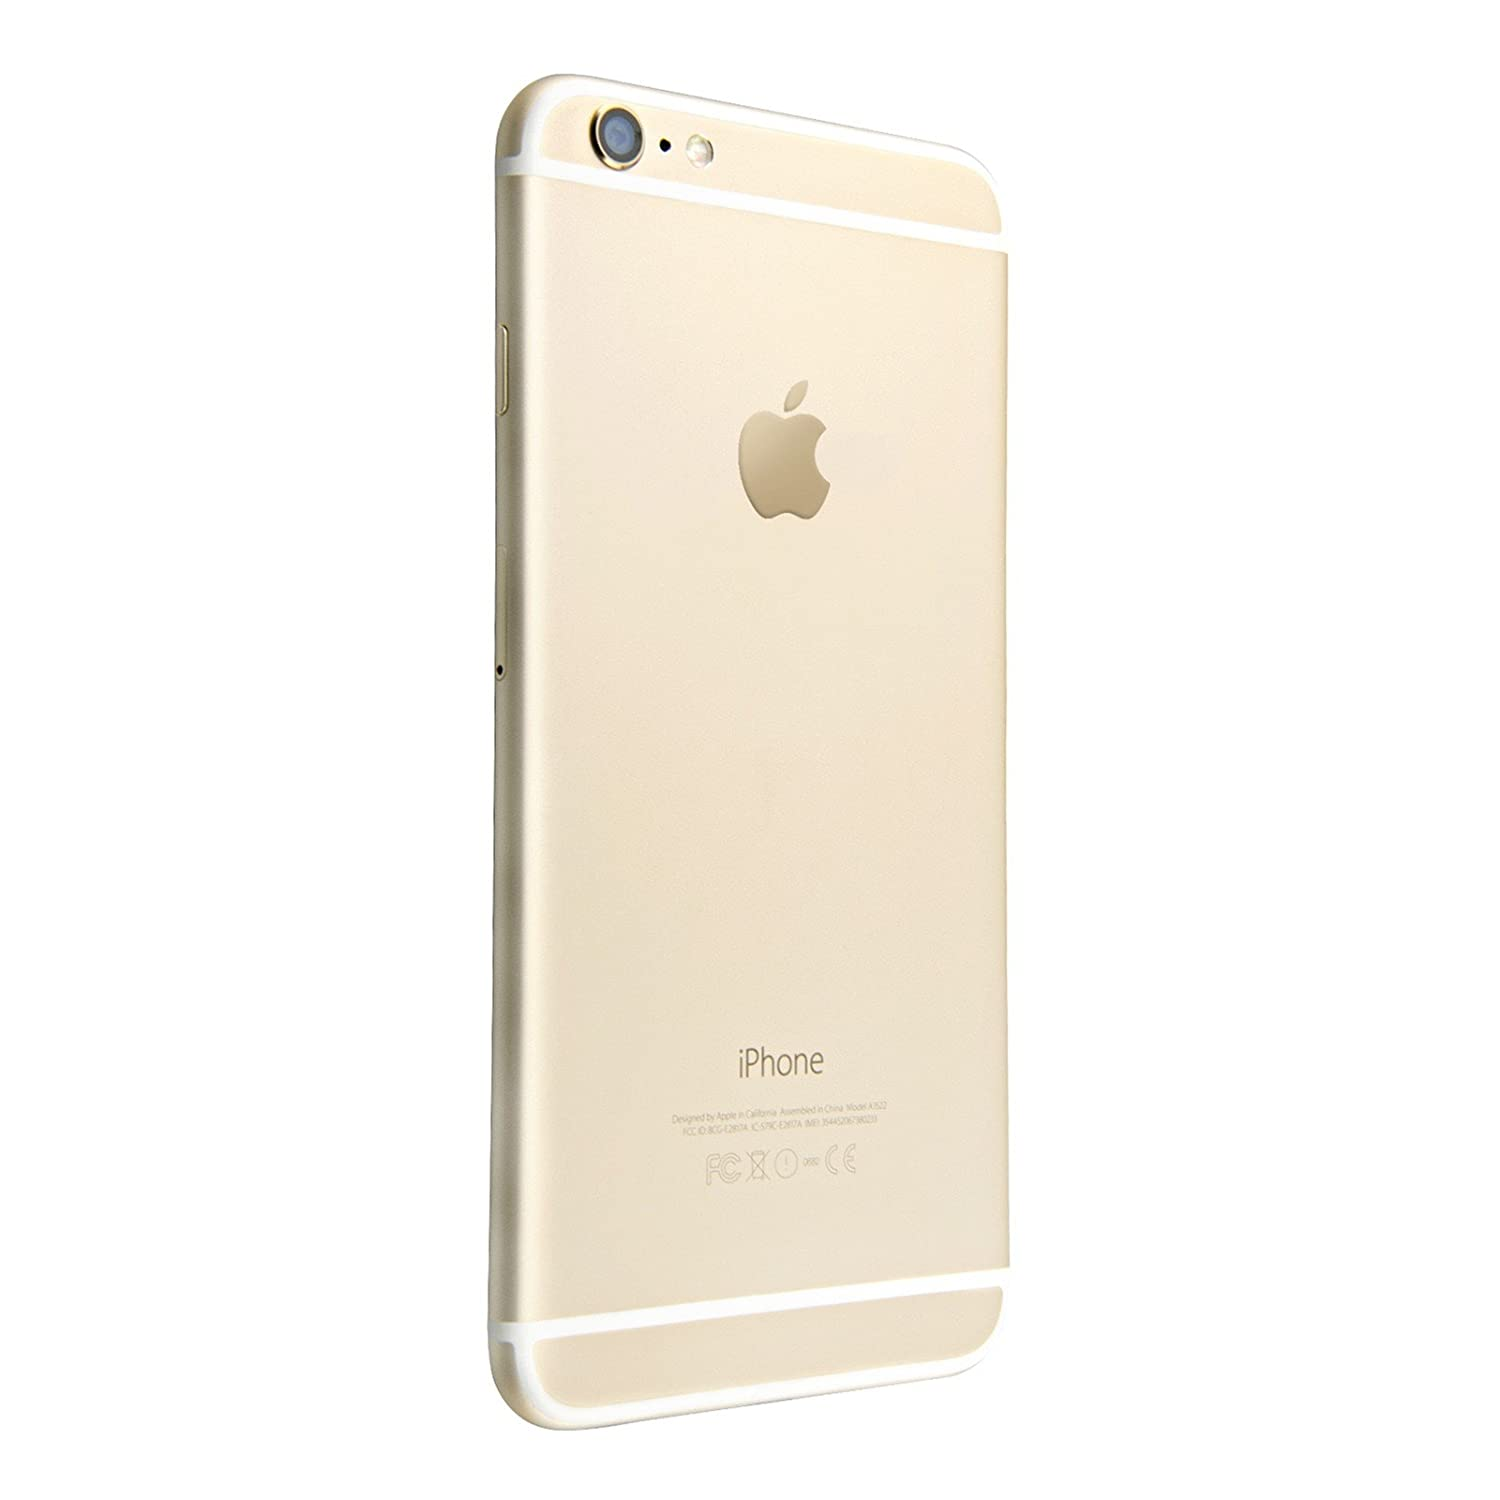 Apple Iphone 6 Plus Gsm Unlocked 64gb Gold Refrubish Free Tempered Glass Refurbished Cell Phones Accessories